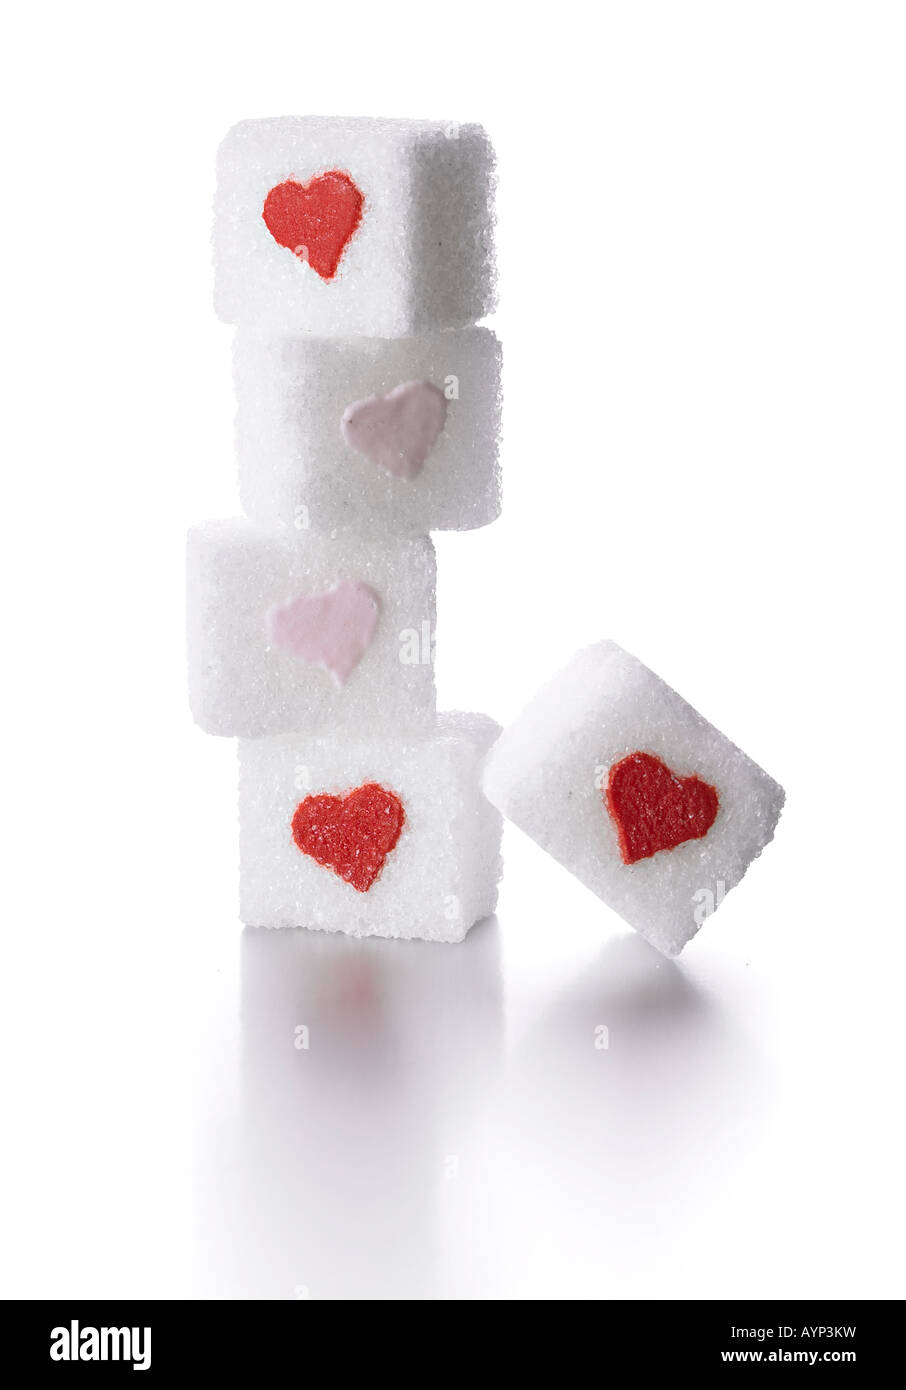 sugar cubes with red hearts - Stock Image